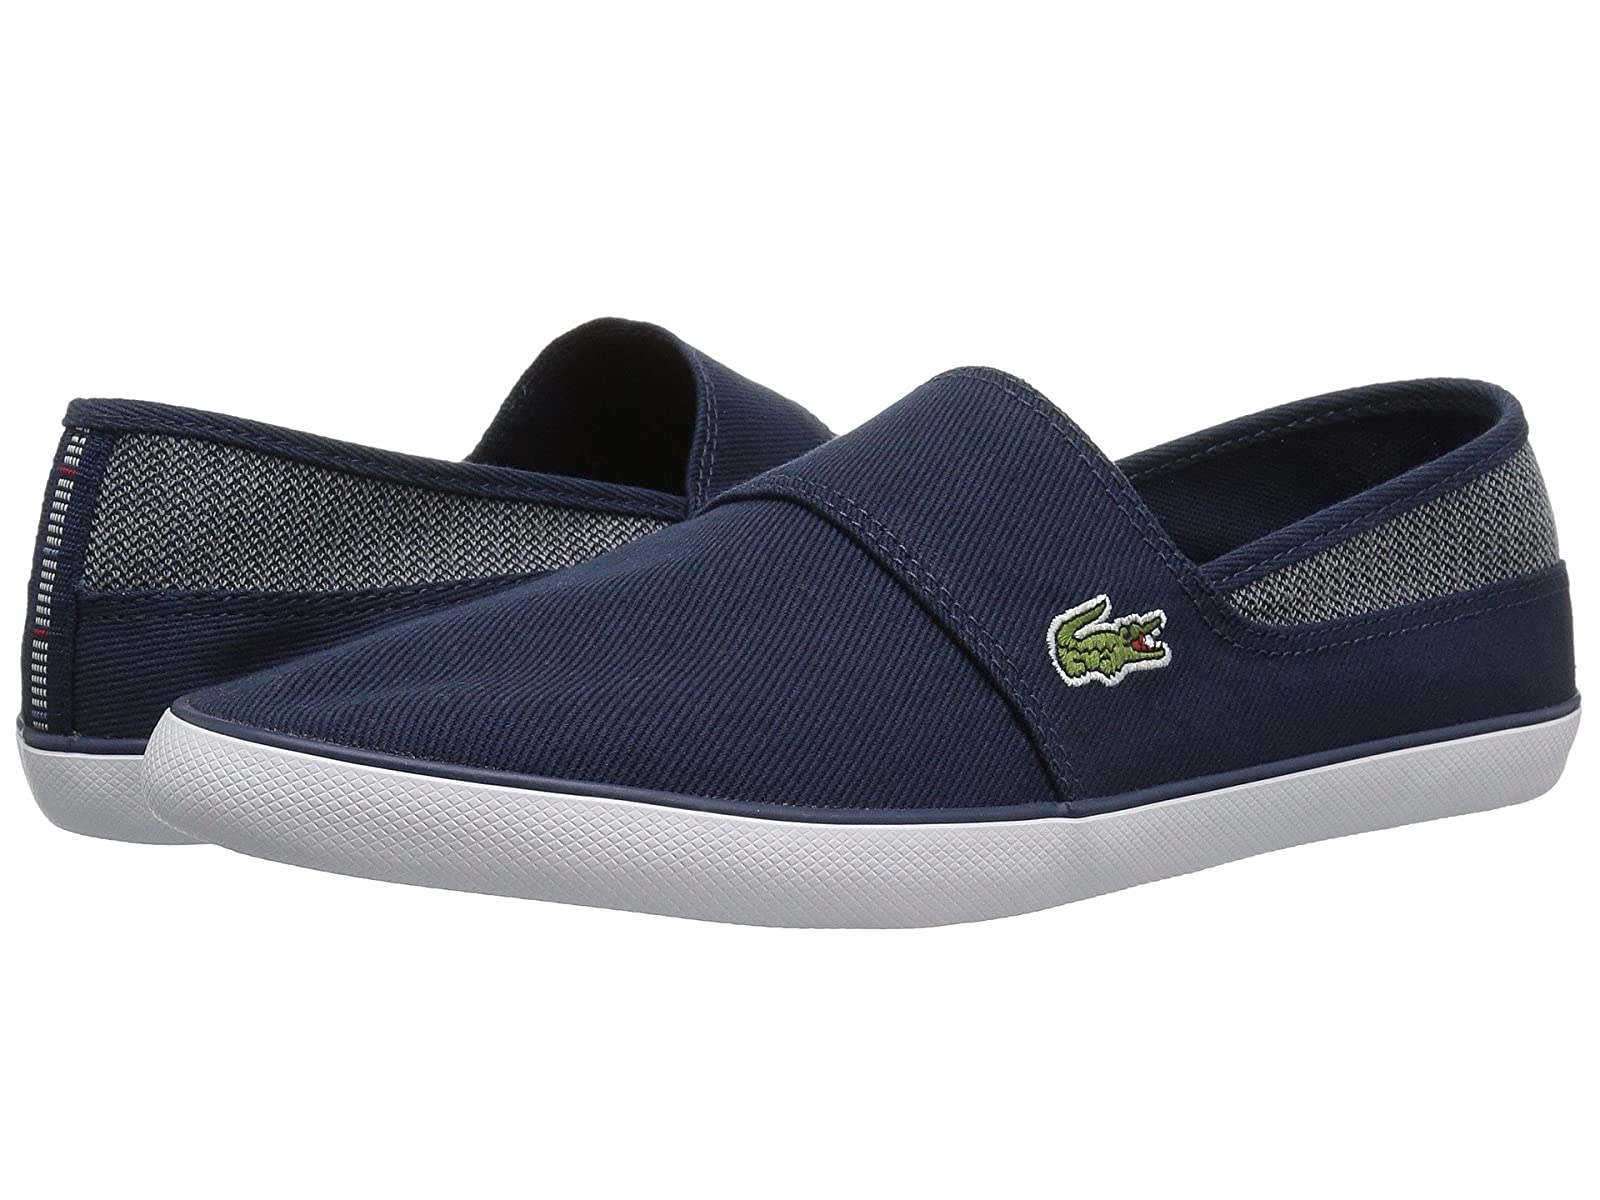 Lacoste Marice 318 1Atmospheric grades have affordable shoes